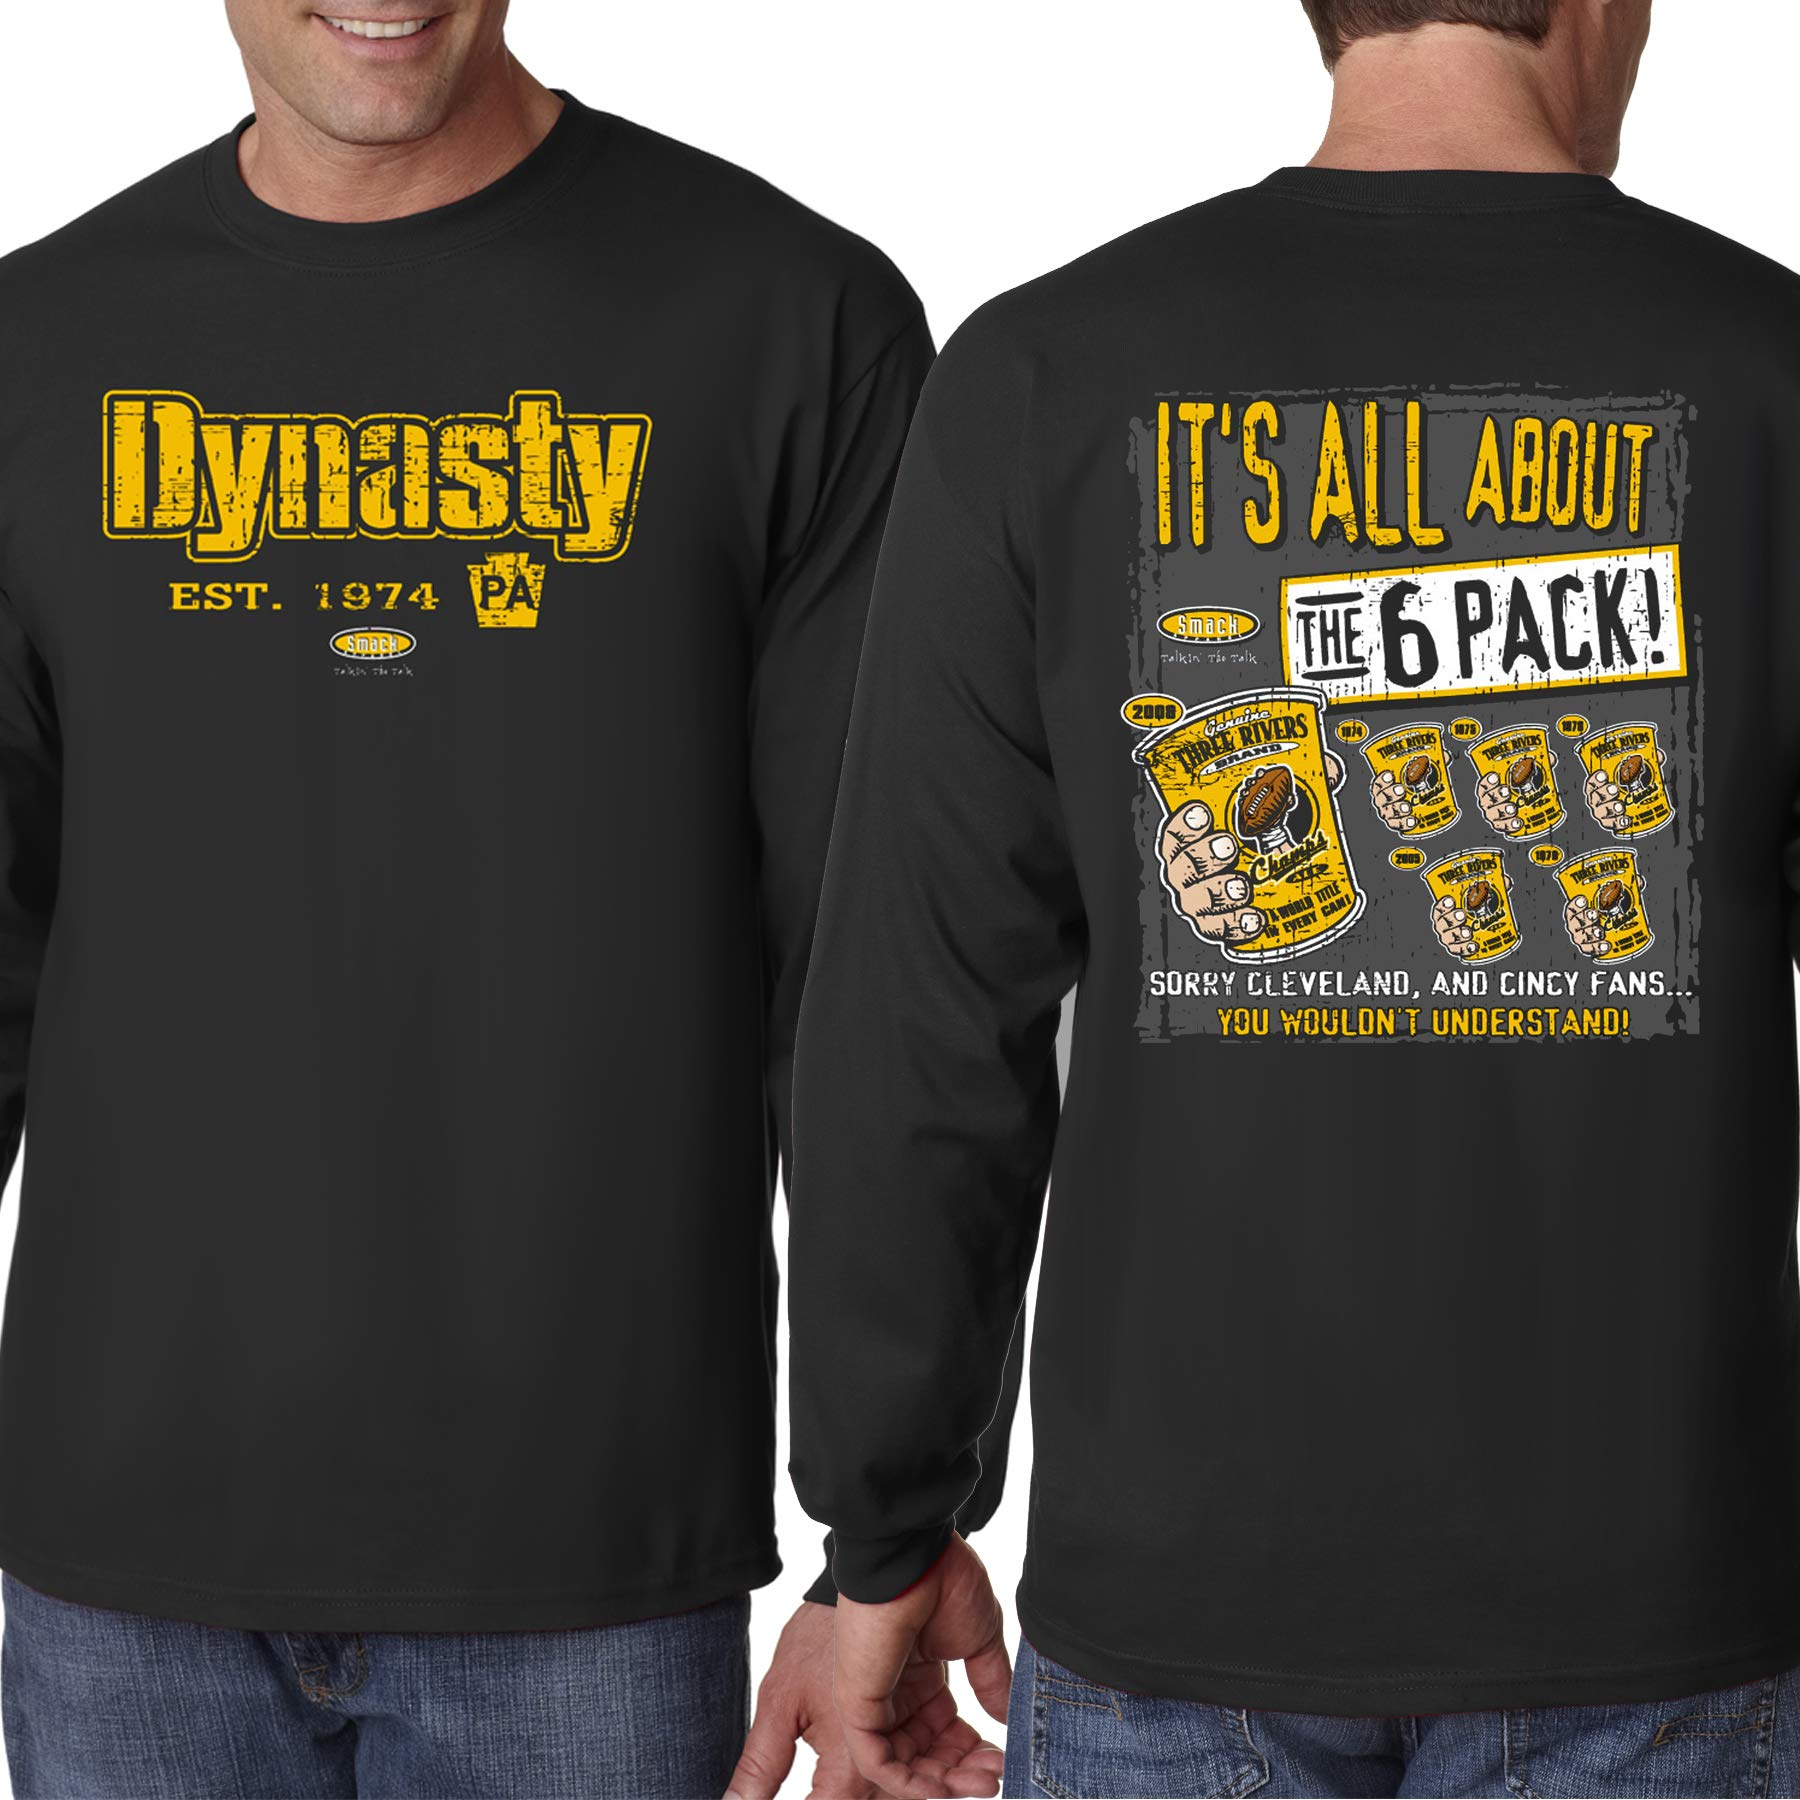 Pittsburgh Football Fans. Dynasty Black T-Shirt (Sm-5X)